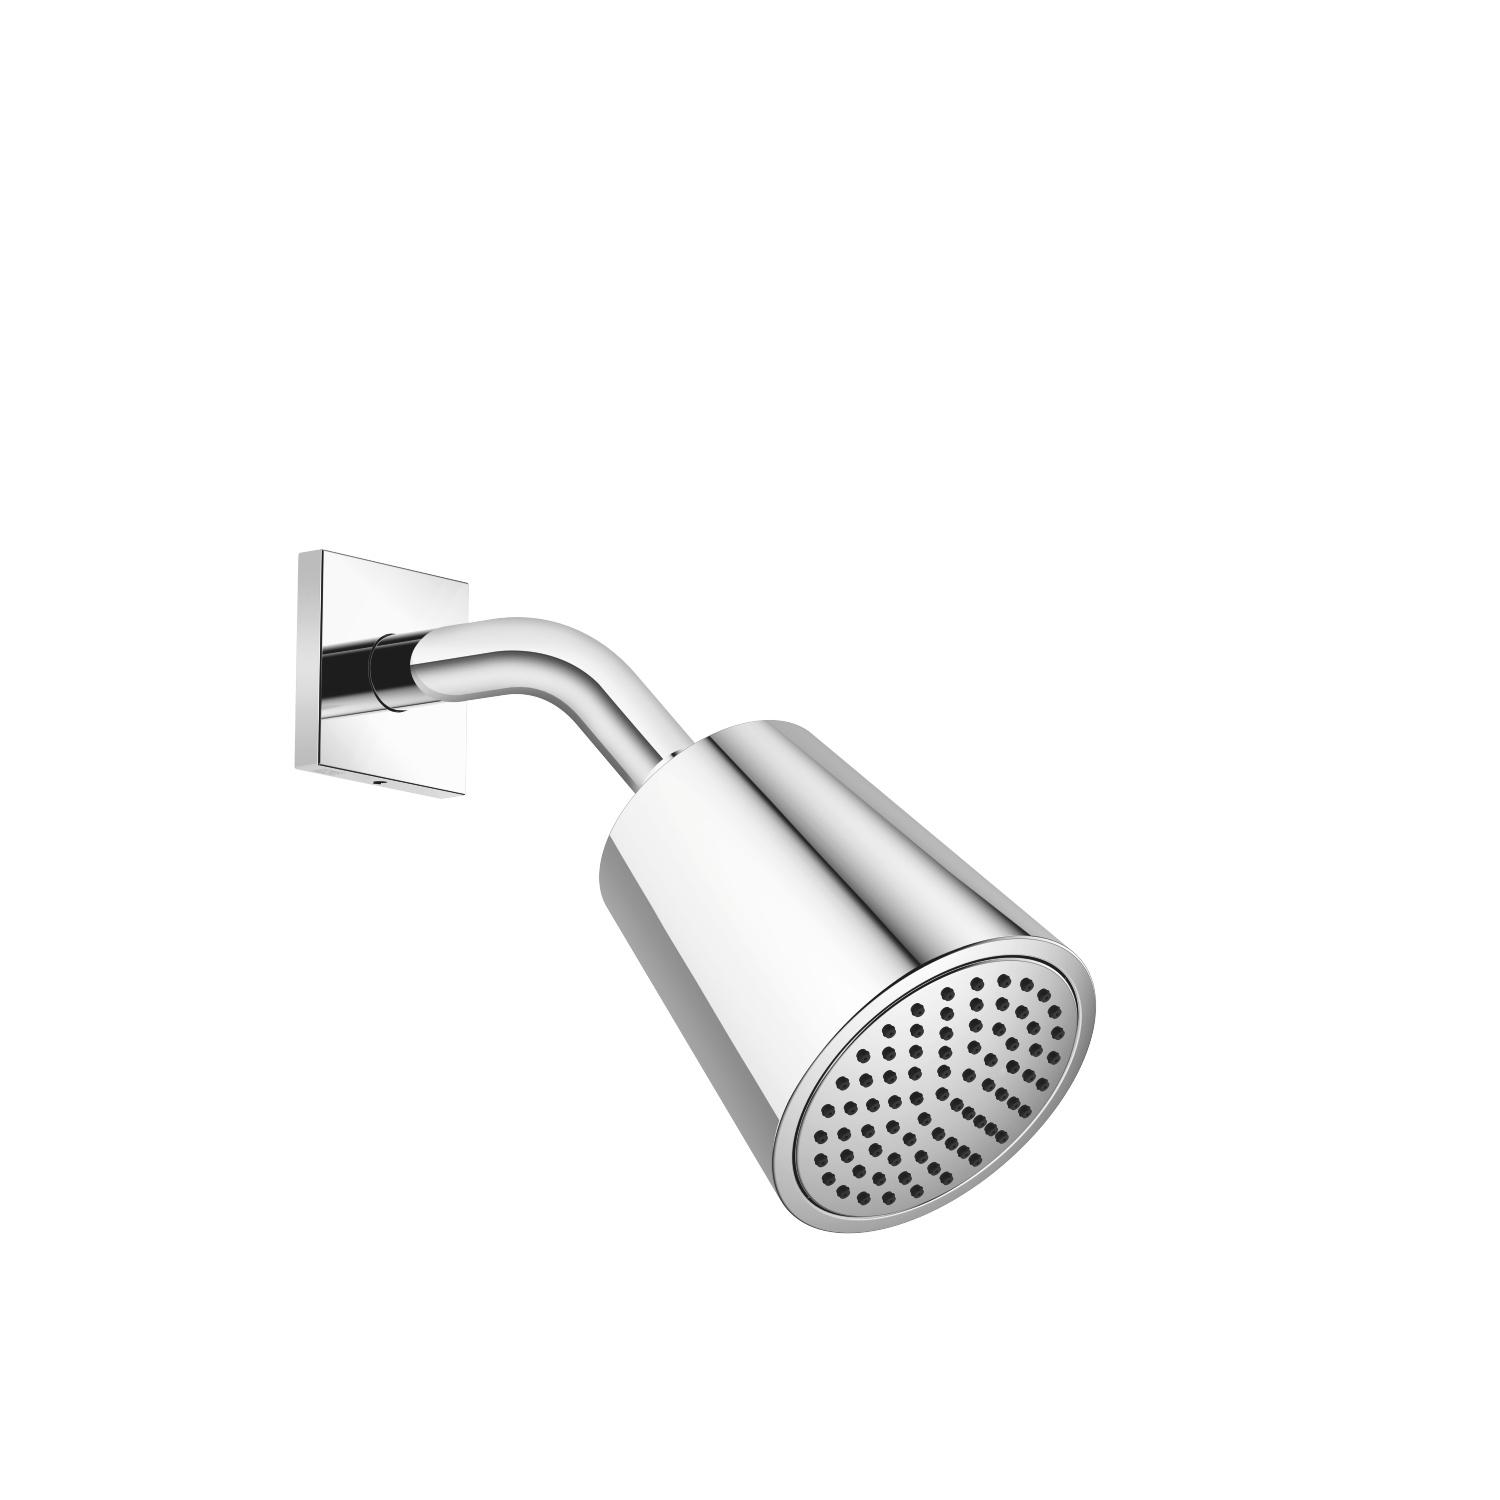 Shower head - polished chrome